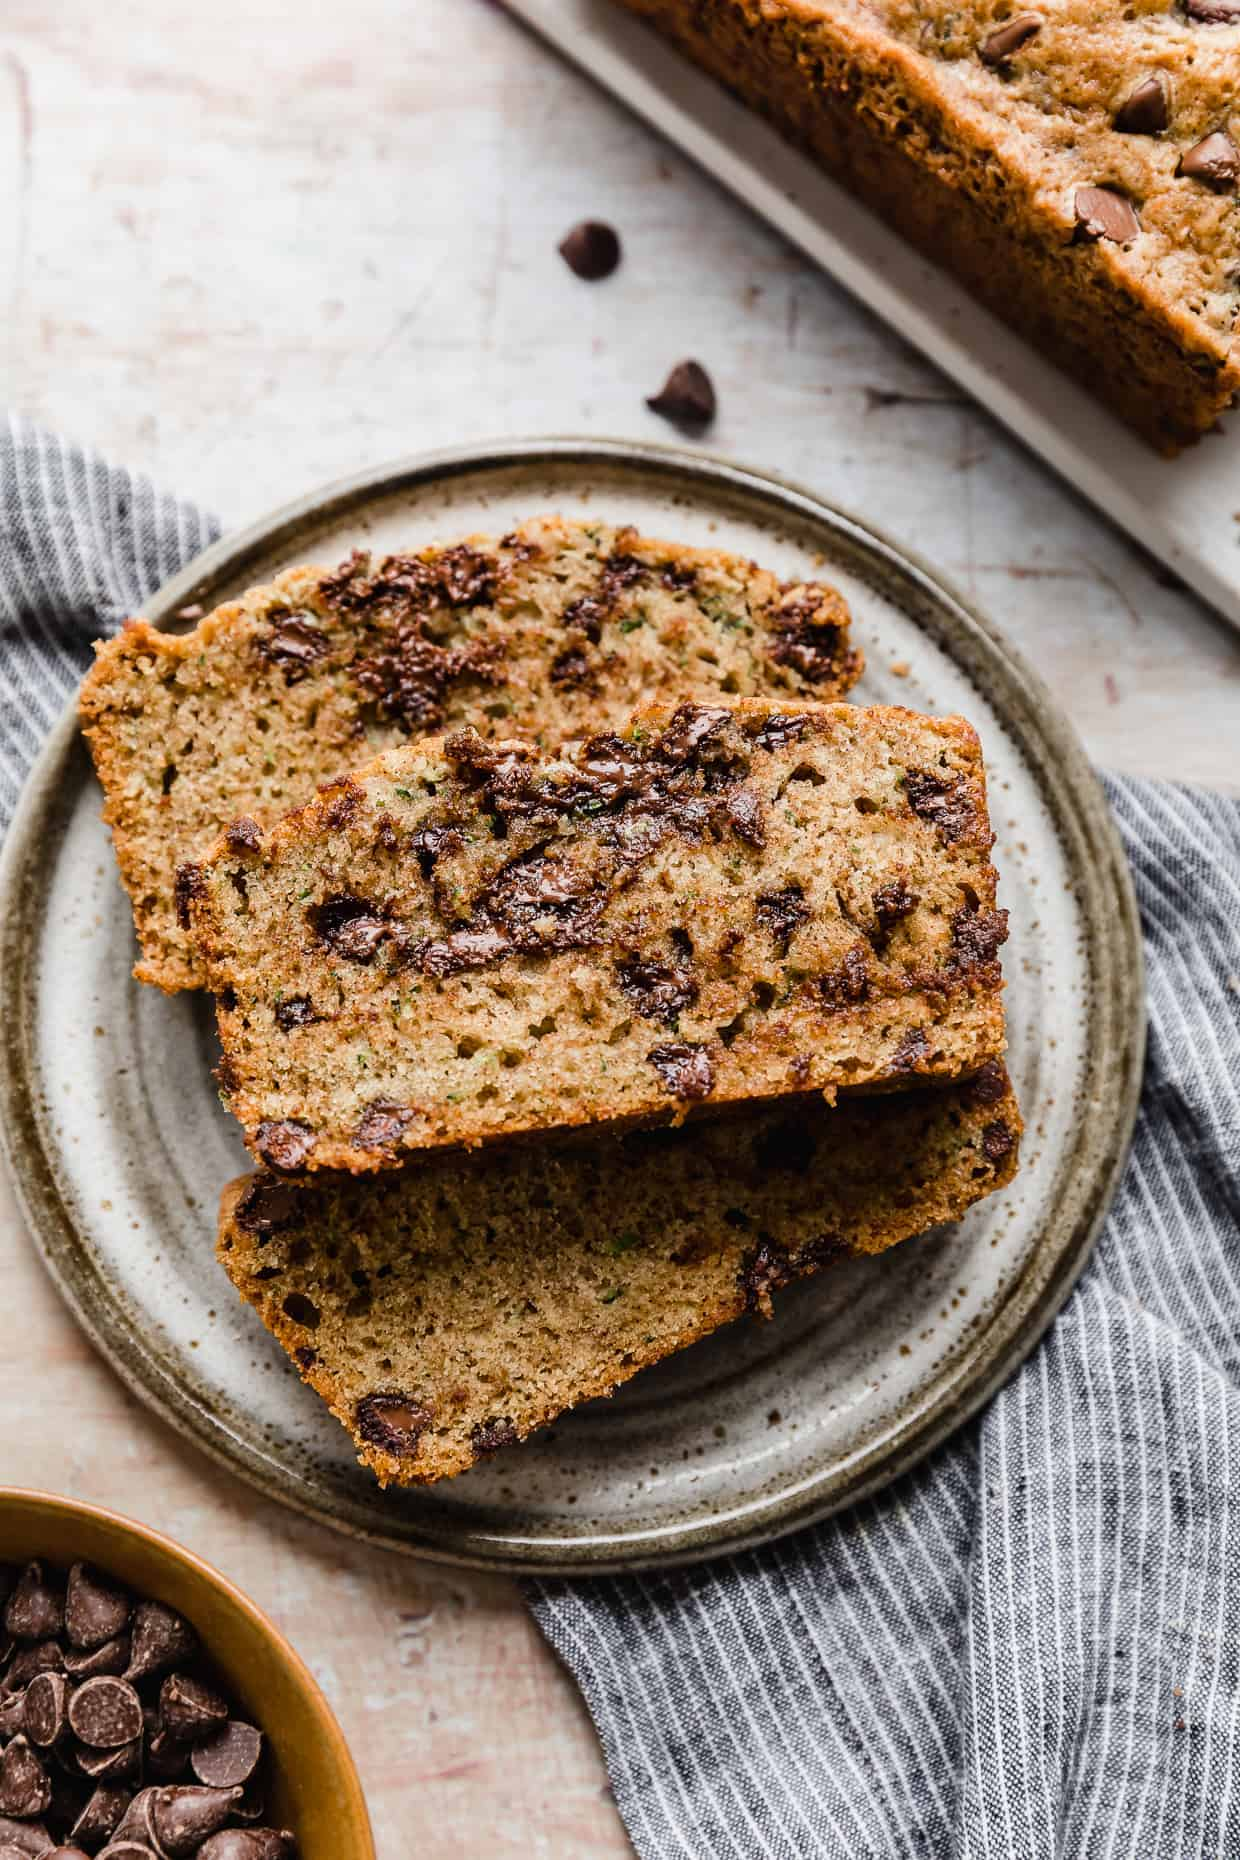 A slice of Chocolate Chip Zucchini Bread on a gray plate.